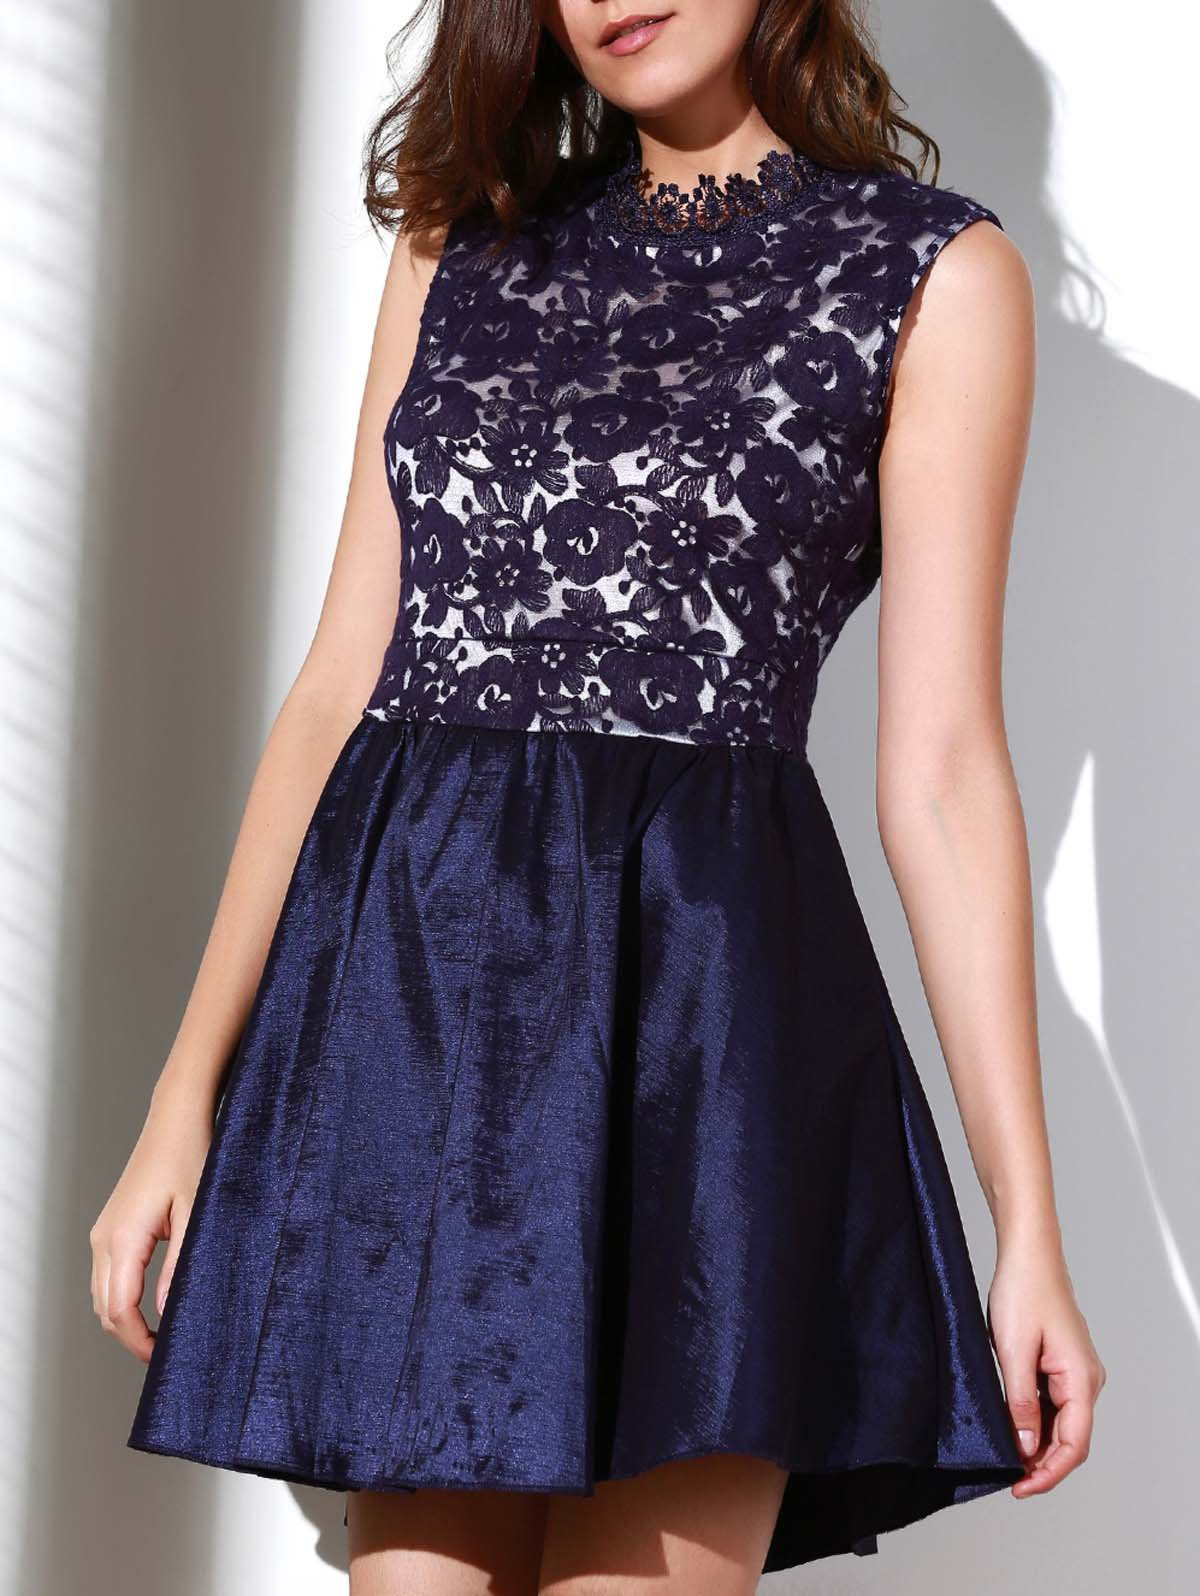 Noble Solid Color Stand Collar Hollow Out See-Through Ball Gown Dress For Women - PURPLISH BLUE M